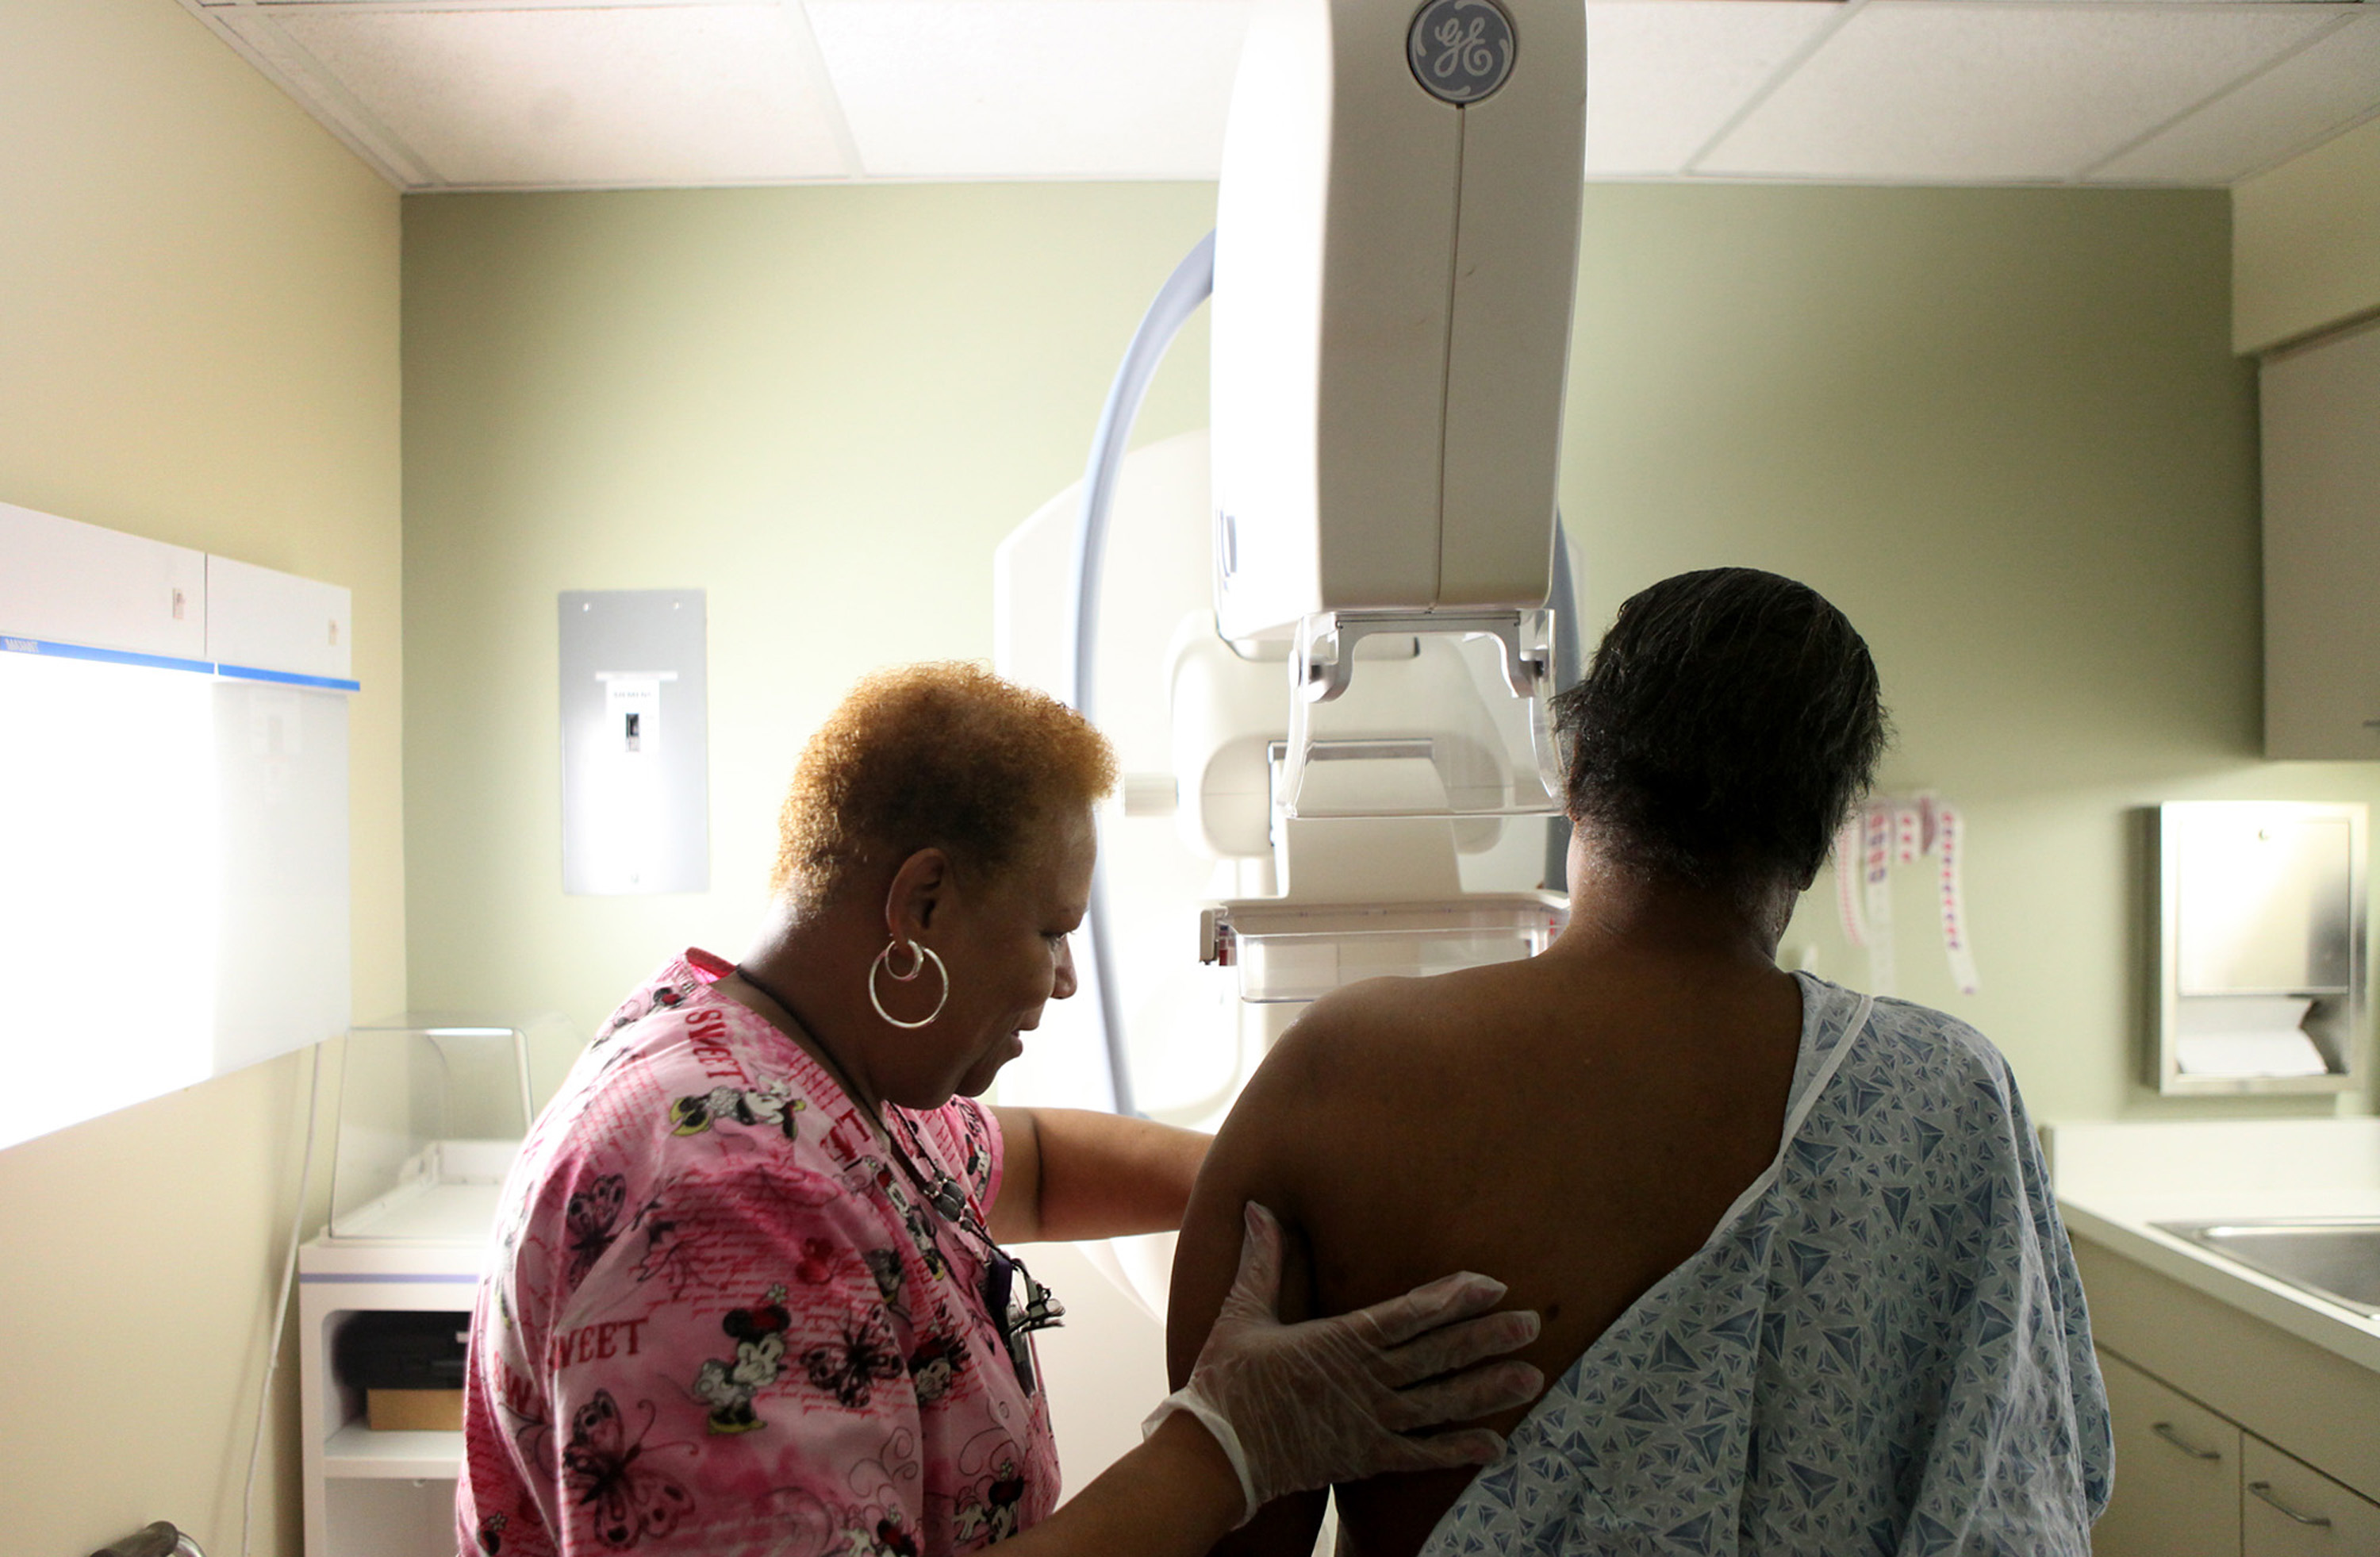 Betty Daniel, right, of Chicago, gets her routine yearly mammogram from Lead Mammography Tech Stella Palmer at Mt. Sinai Hospital in Chicago, February 15, 2012.